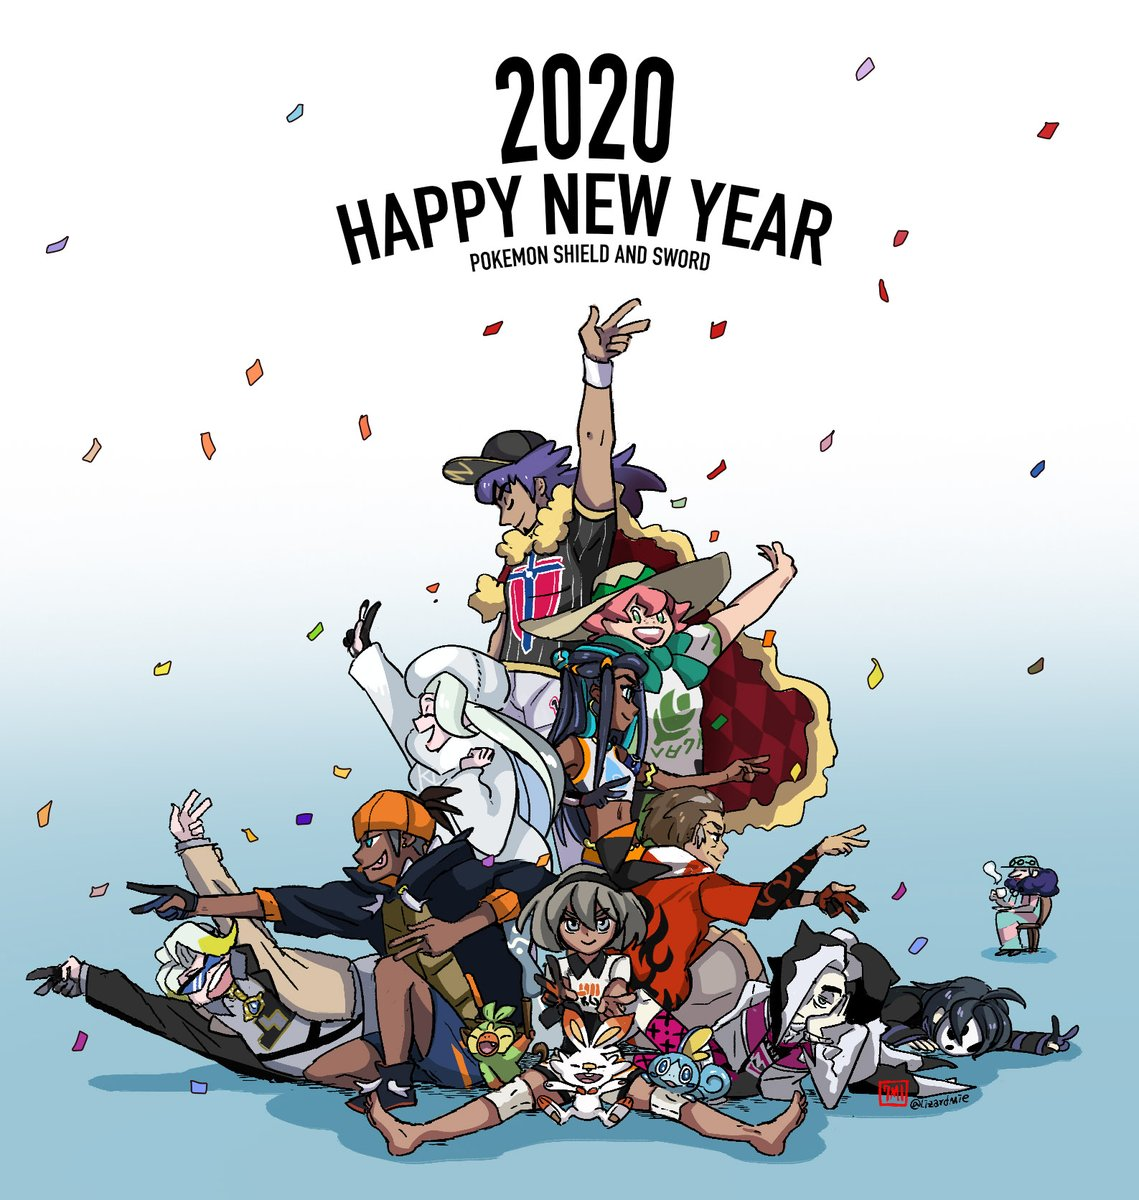 HAPPY NEW YEAR 2020 to all the twitter folks as well! (the few peps who still care that is xD) I know I know: I'm not really the most active guy on here. But no matter what issues we had...I still wish everyone of you guys a (hopefully) great start into the new year SEE YA!